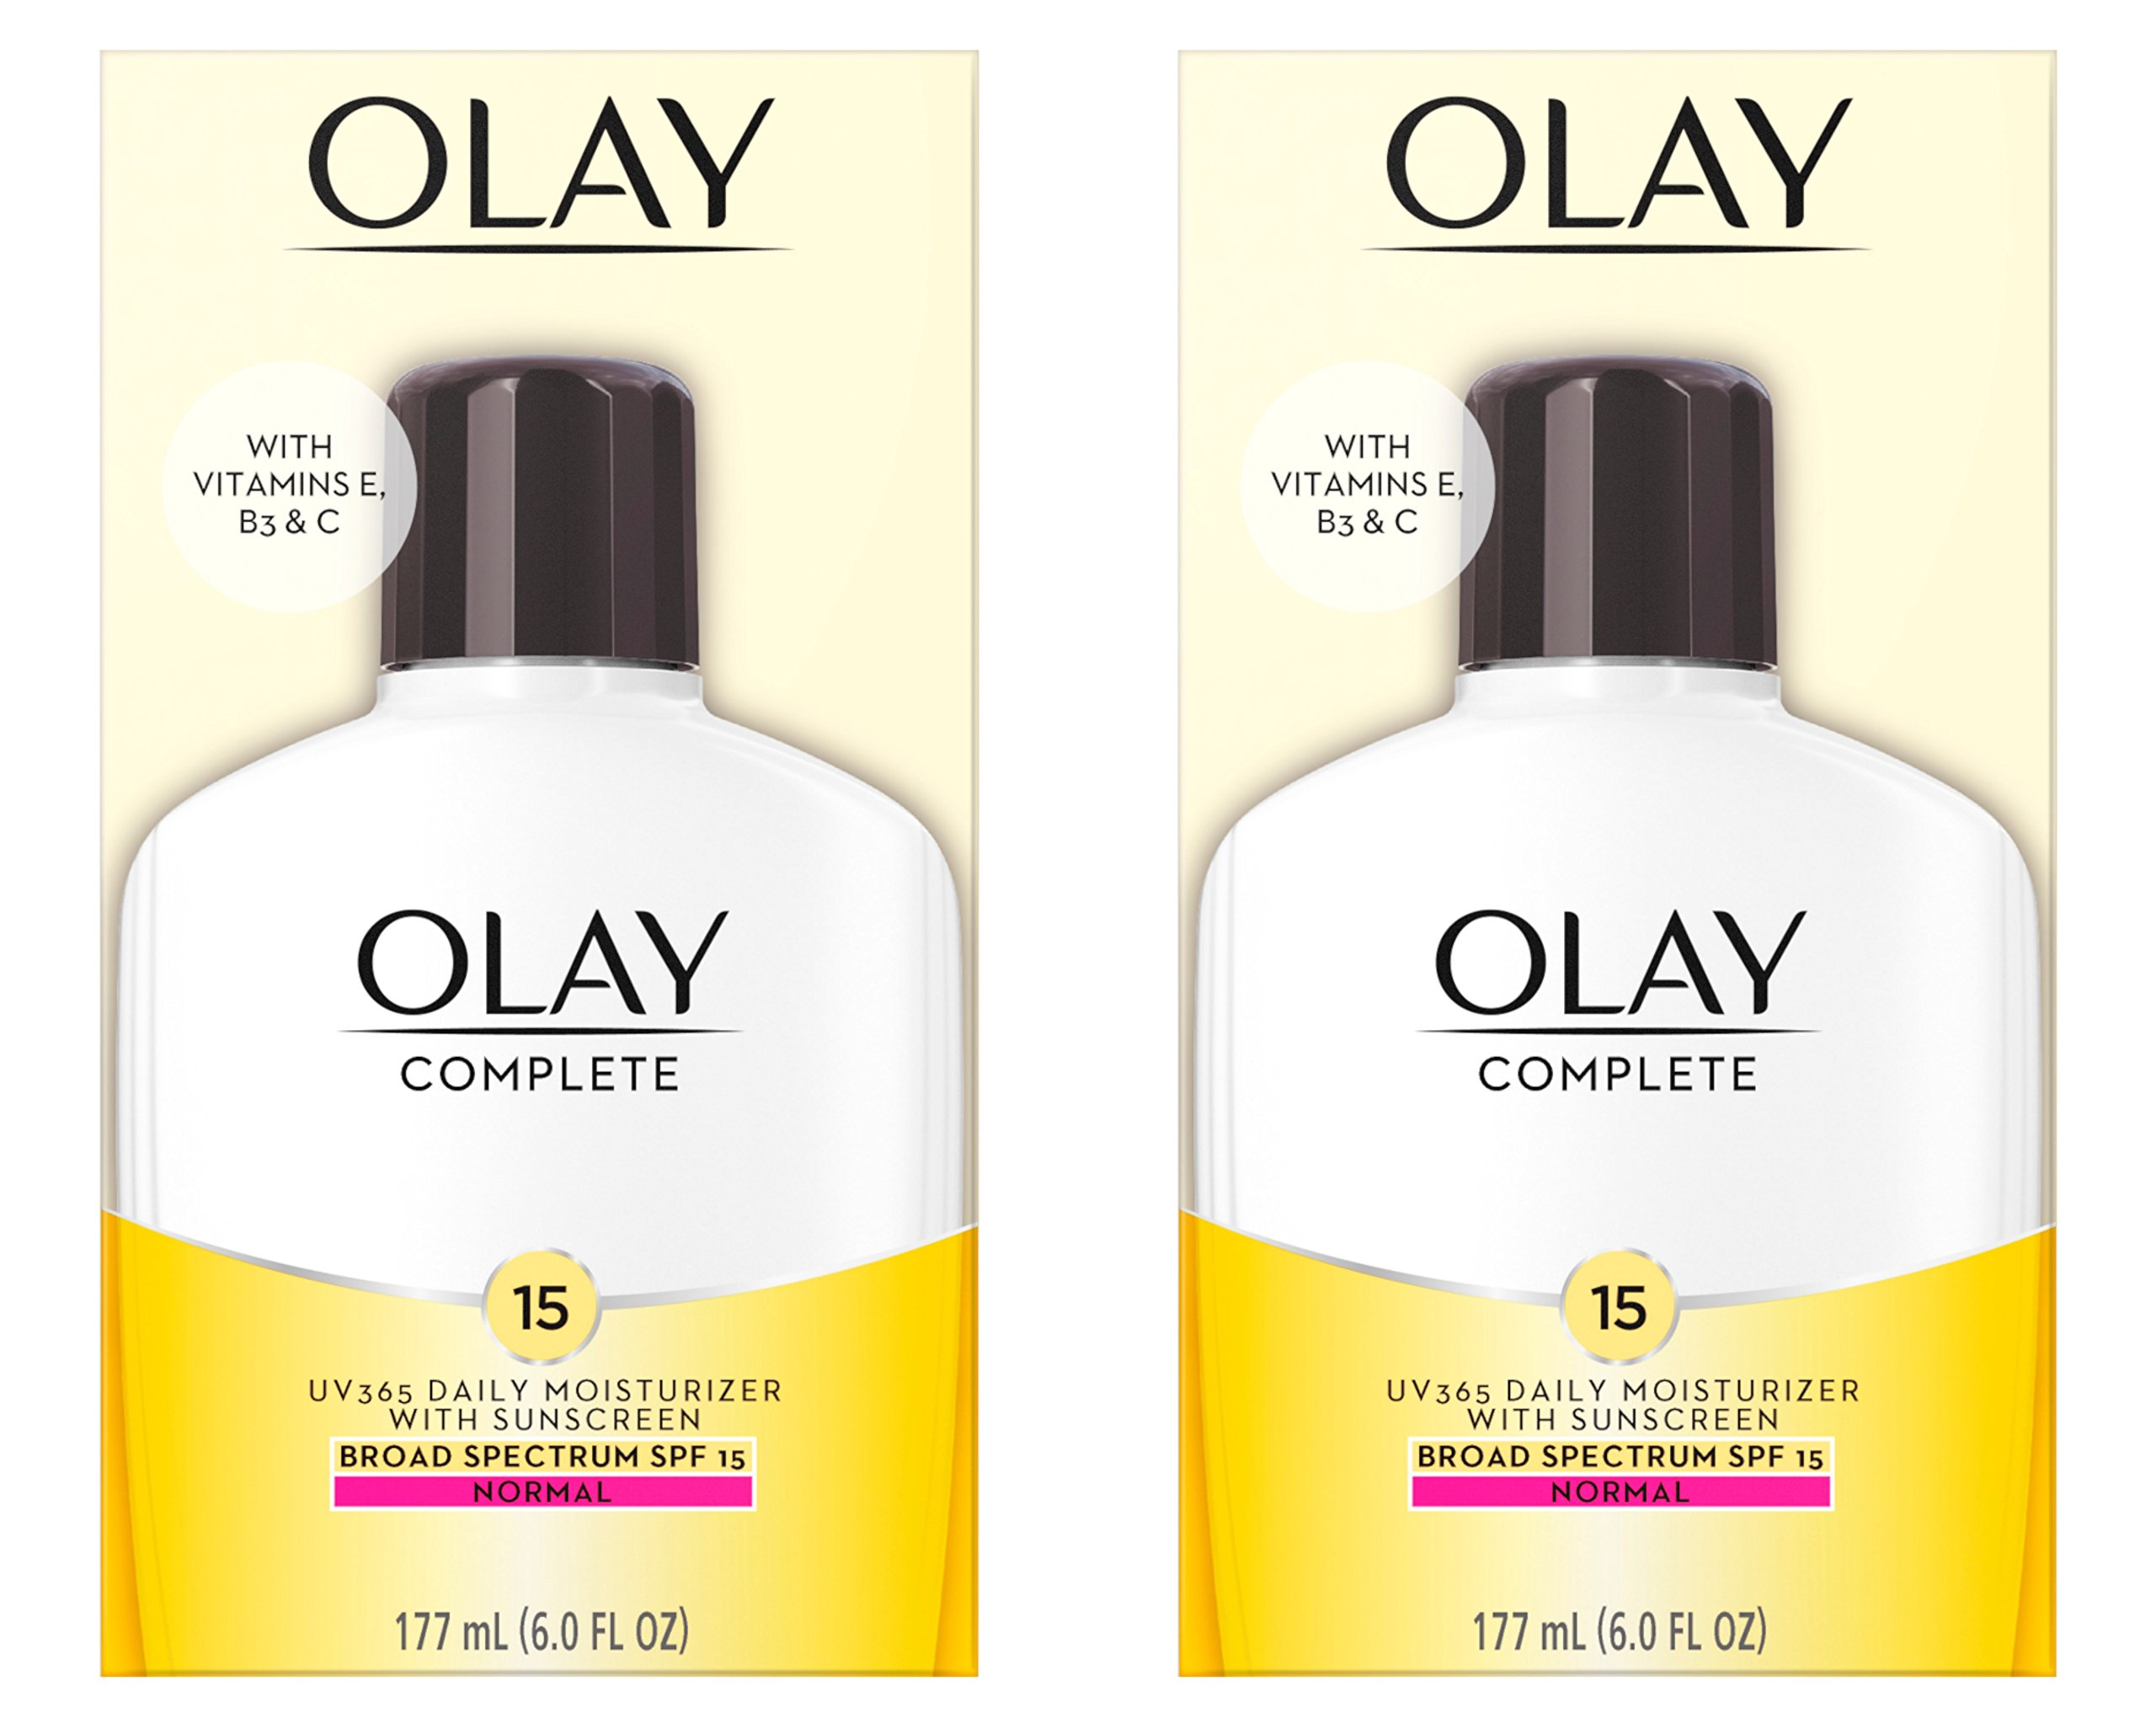 Face Moisturizer by Olay Complete Lotion All Day Moisturizer with SPF 15 for Normal Skin, 6.0 fl oz, Pack of 2 by Olay